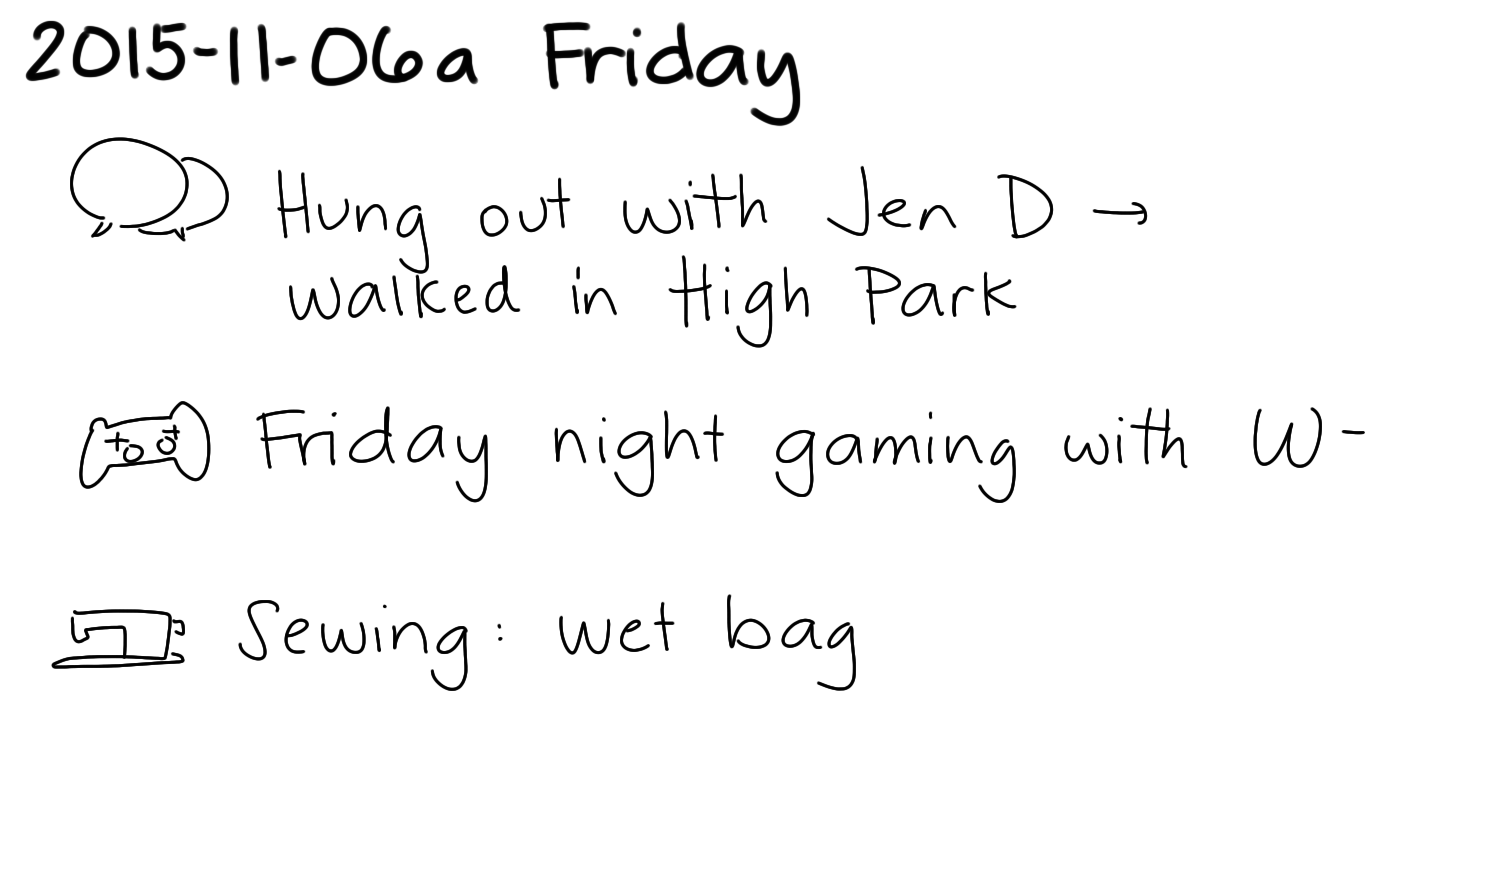 2015-11-06a Friday -- index card #journal.png